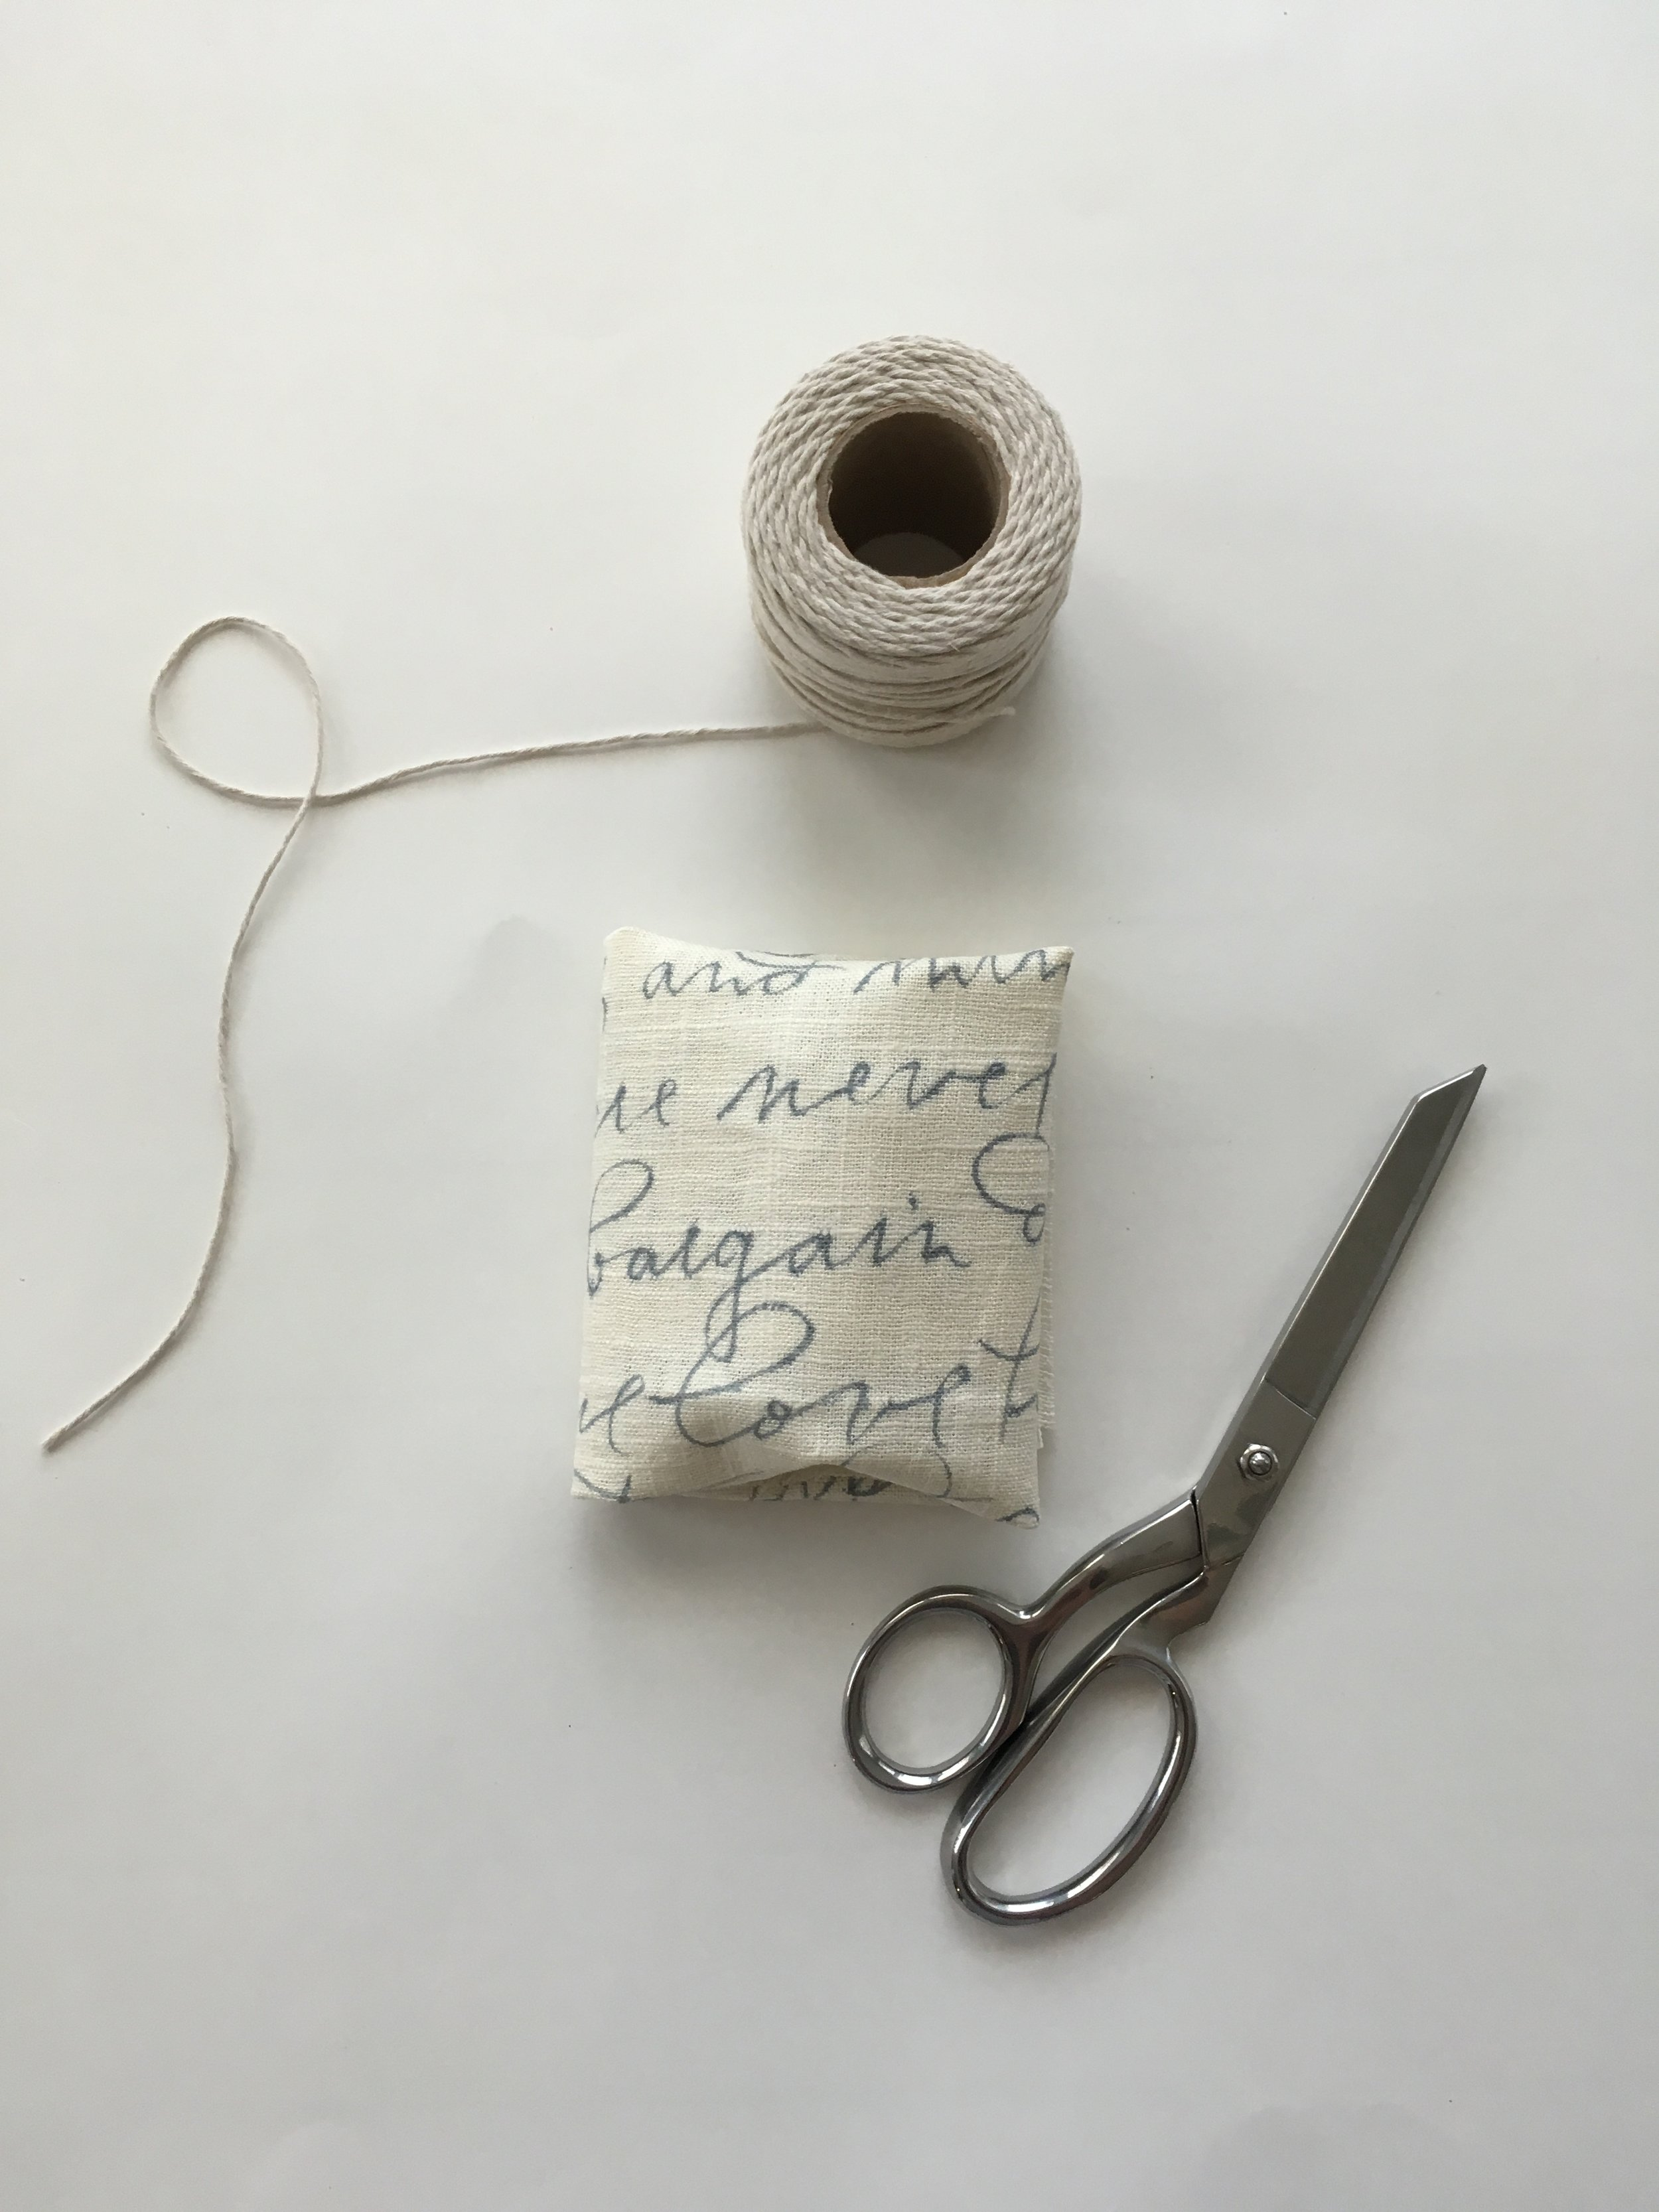 Step 7. - TIE. Tie up your sweet gift with ribbon or twine. Now you're ready to give! Fabric makes gifting small tokens or handmade gifts even more personal. Hostess gifts, housewarming, wedding or anniversary gifts are all great occasions for wrapping with fabric.